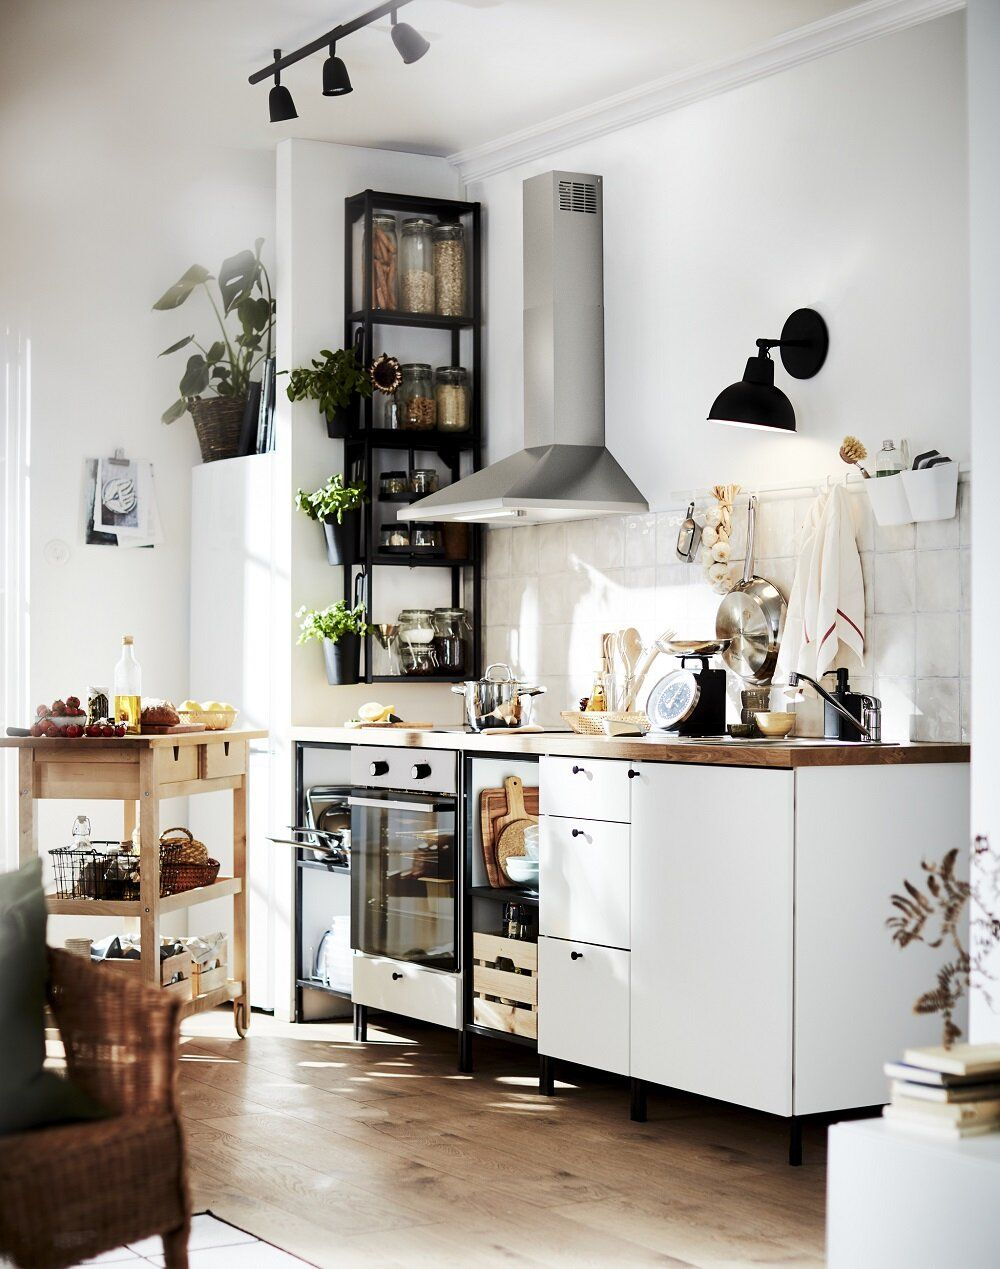 Small white IKEA kitchen with open shelves in 2020 Ikea